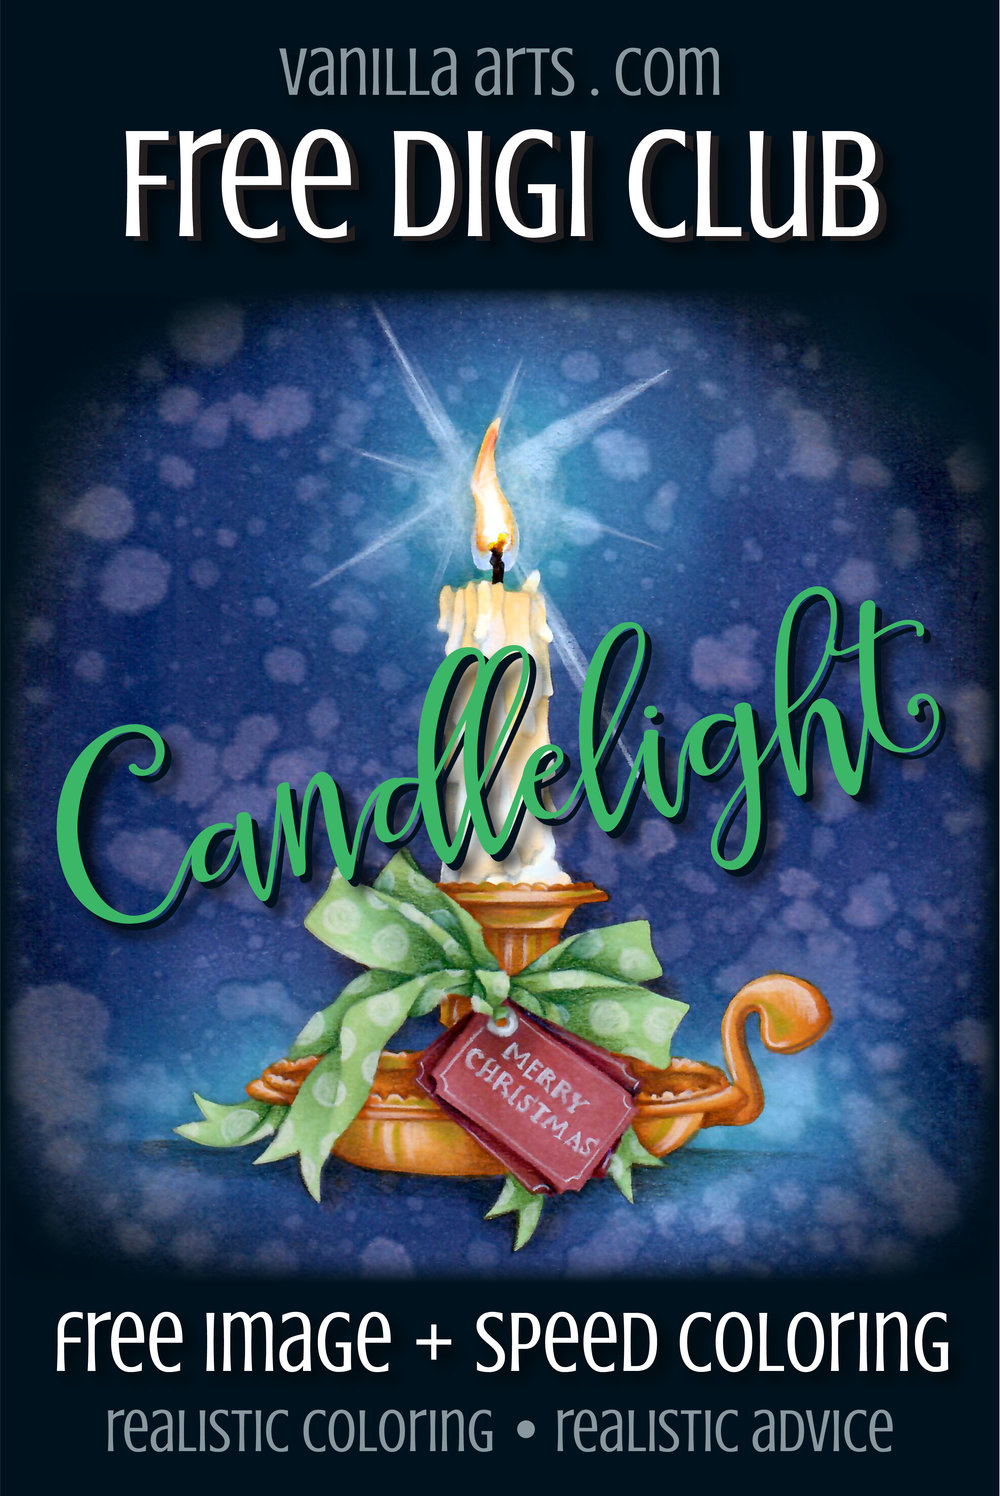 """Get your FREE copy of the """"Candlelight"""" digital stamp in December 2017. Join the Free Digi Club for a new stamp every month!   VanillaArts.com"""